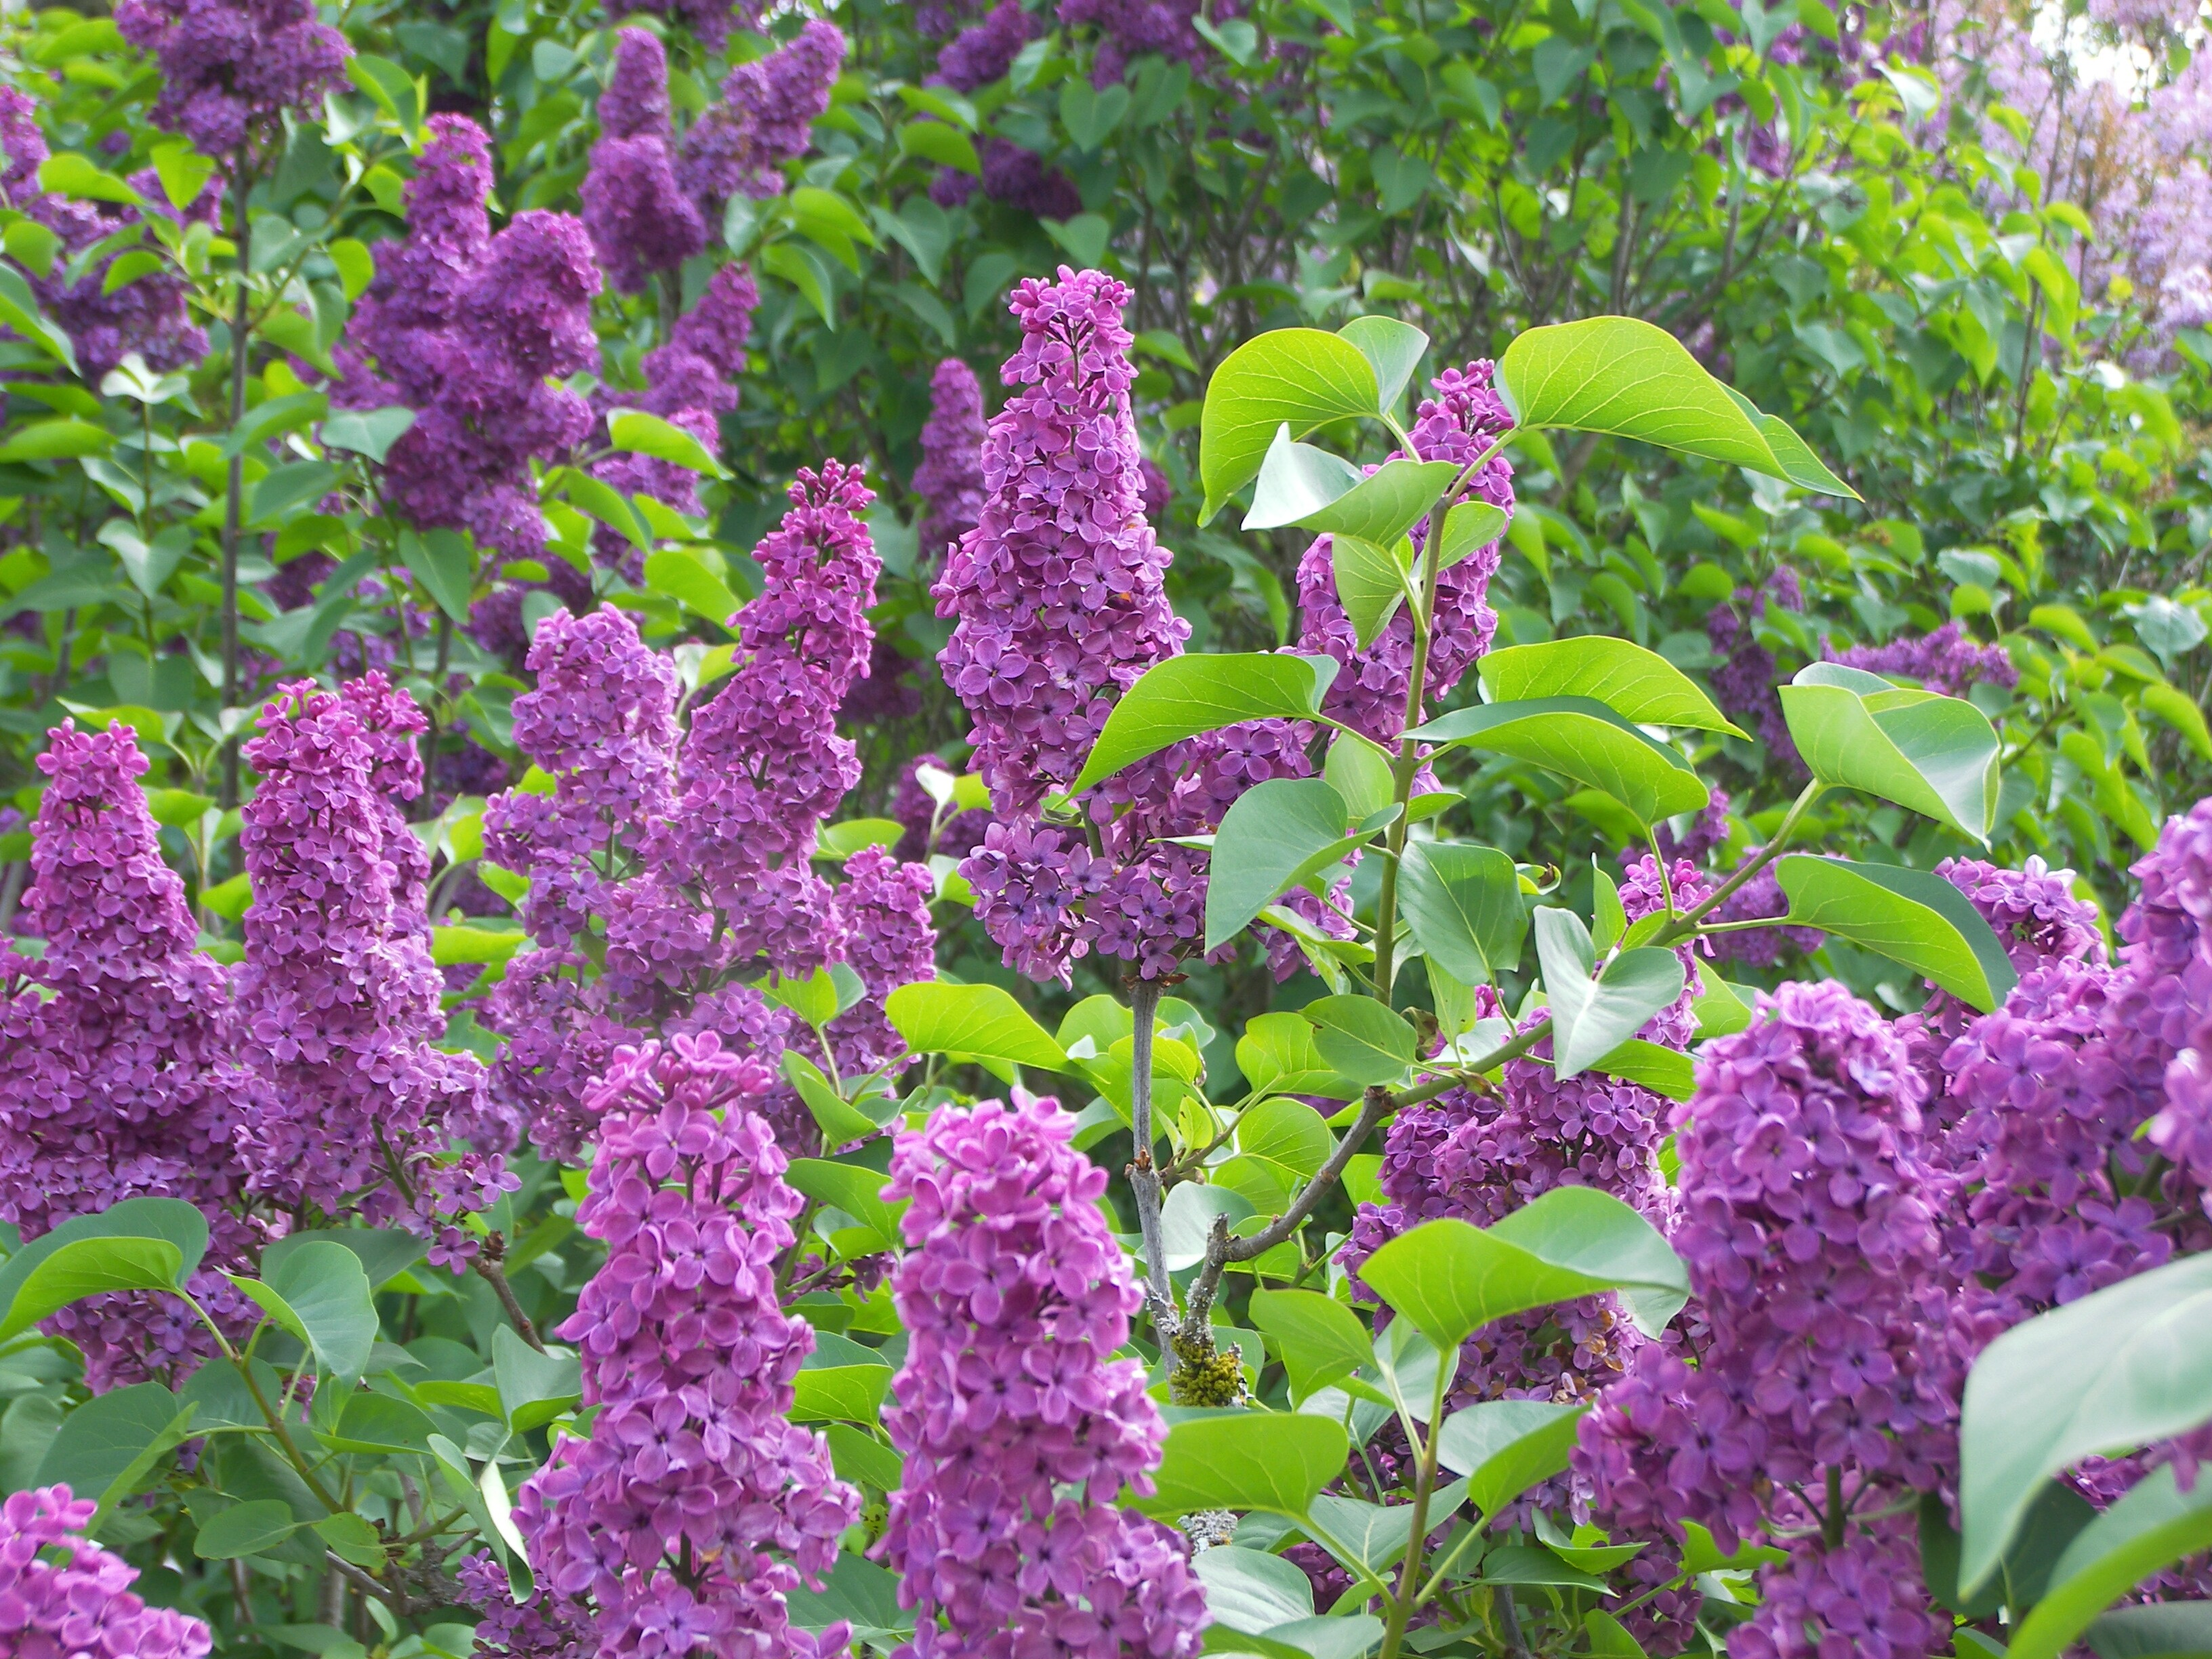 WHITMANu0027S TRINITY OF REMEMBRANCE WHEN LILACS LAST IN THE DOOR-YARD BLOOMu0027D & WHITMANu0027S TRINITY OF REMEMBRANCE: WHEN LILACS LAST IN THE DOOR-YARD ...